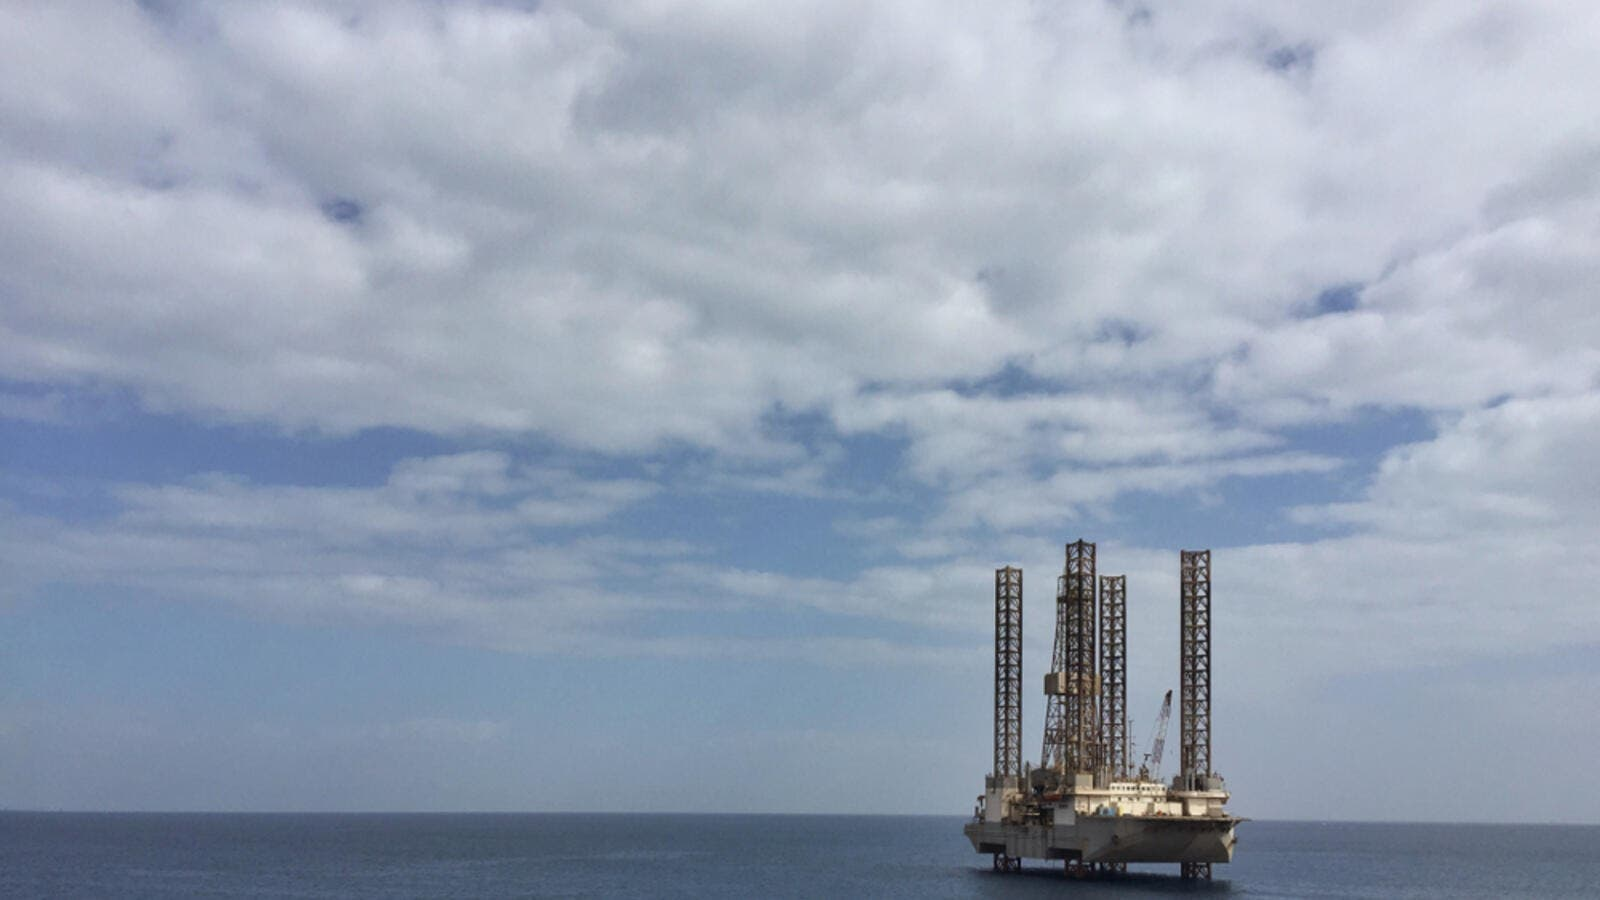 Offshore Jackup Drilling Rig in the Gulf Of Suez.